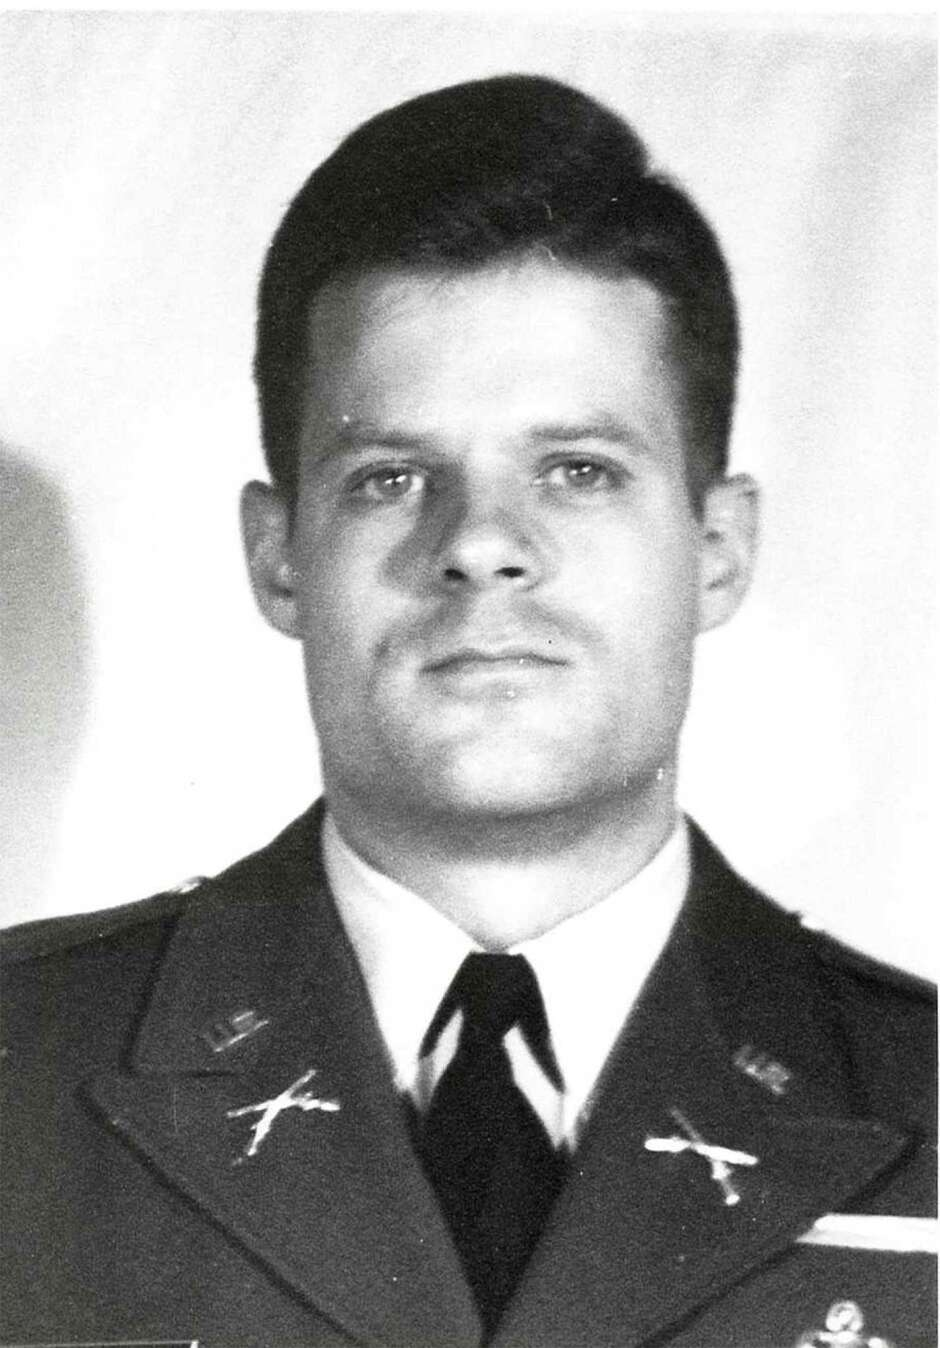 Army Maj. Richard Harwood Pearce defected to Cuba in 1967. He returned to the U.S. in 1979.